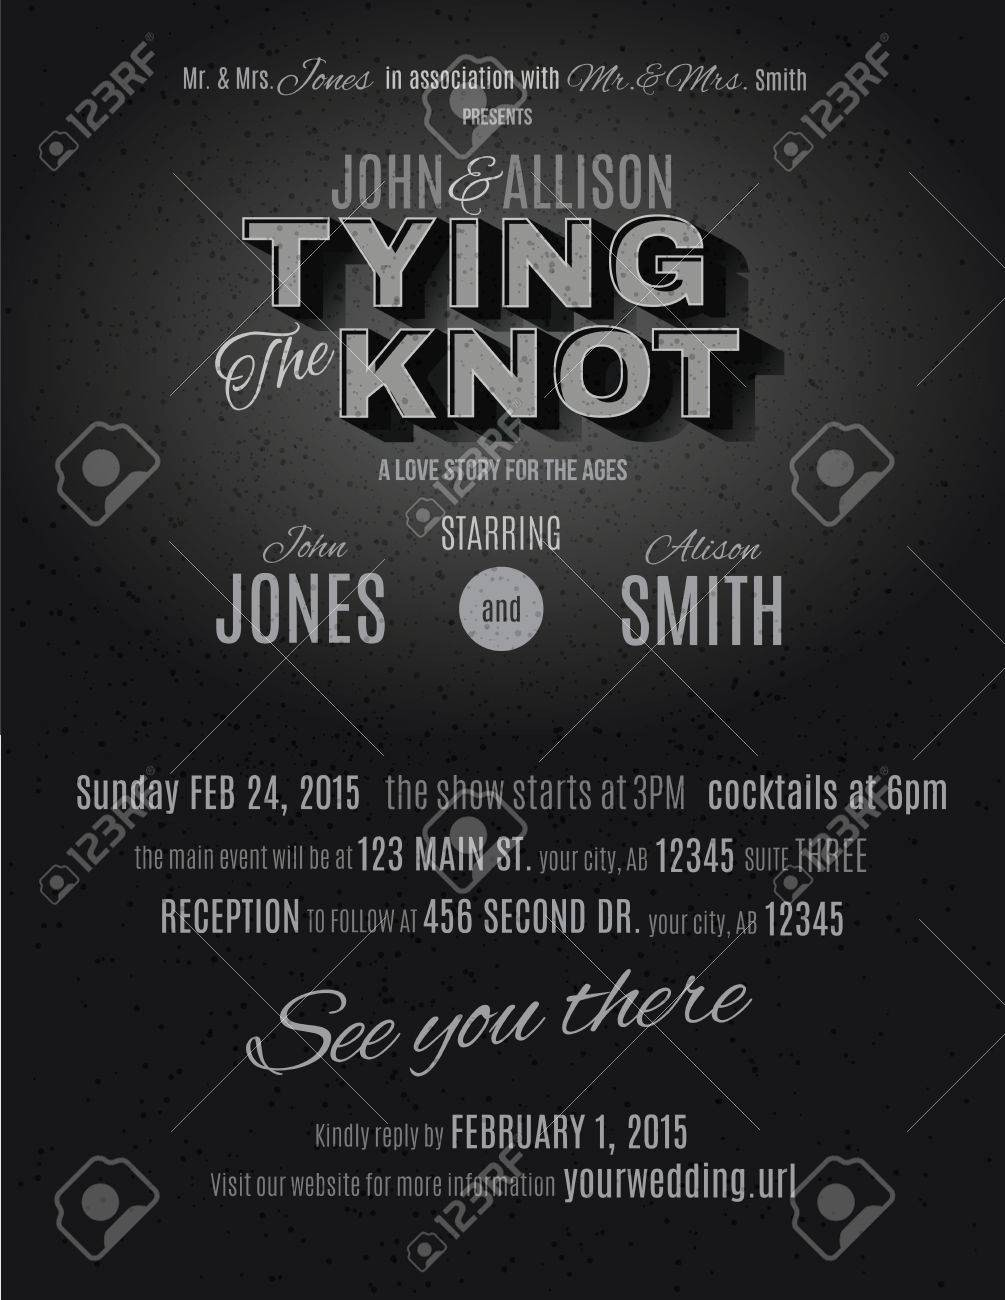 Movie Premiere Invitation Template Free Elegant Vintage Movie Night Invitation Template Retro Cinema Text